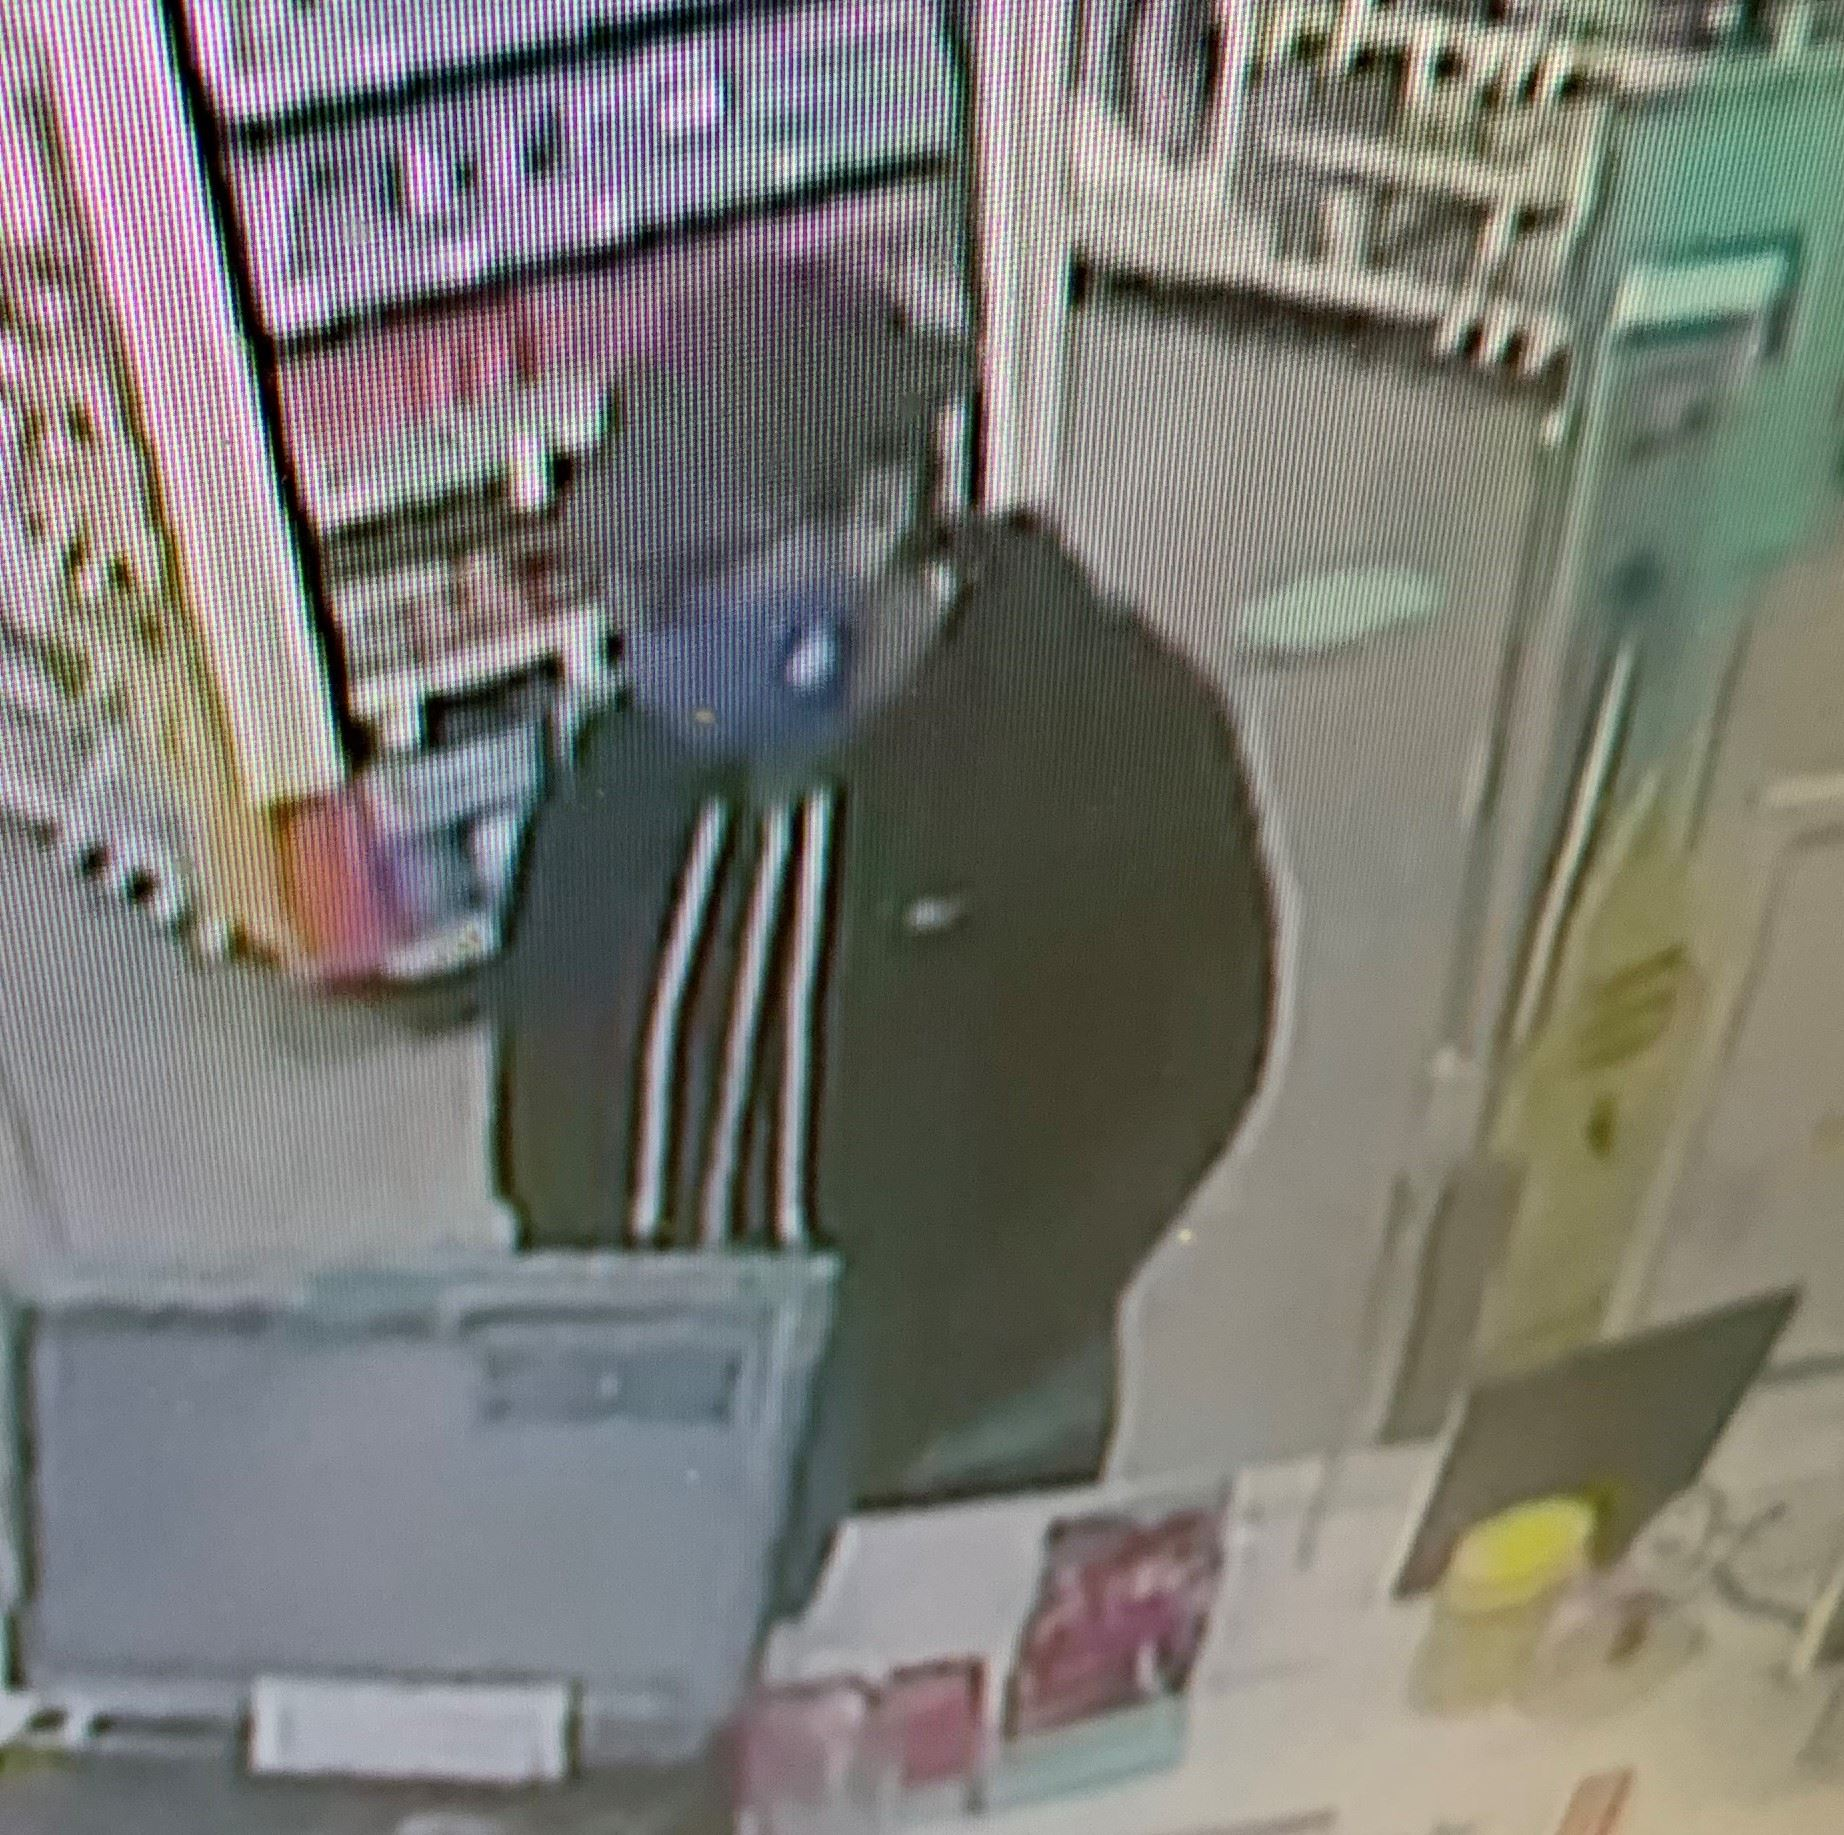 Walgreens Robbery Suspect 4-13-21